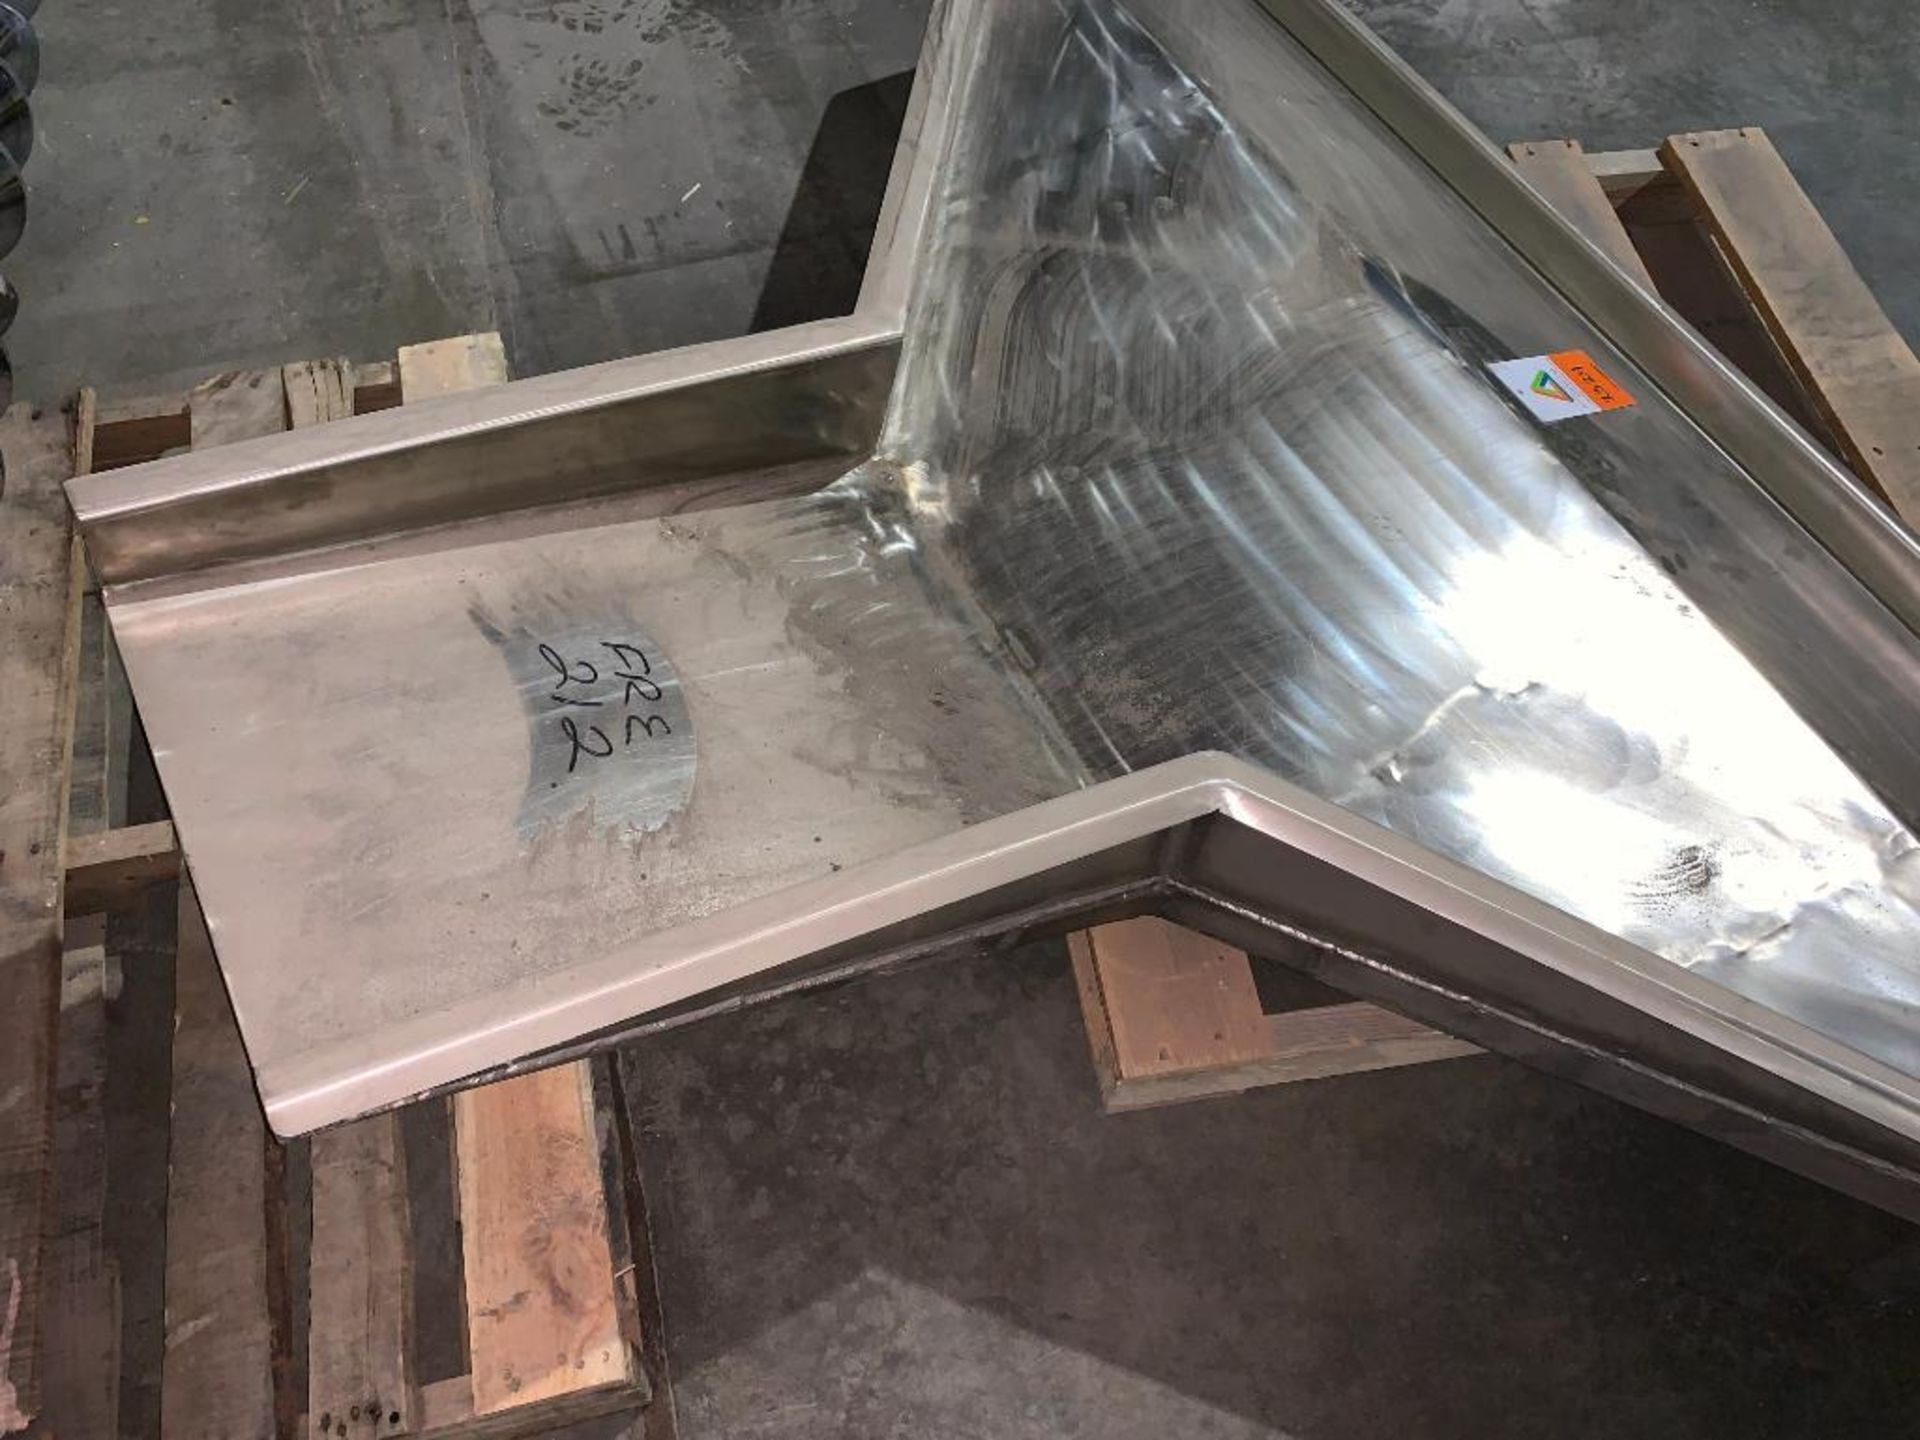 stainless steel tray for vibratory feeder - Image 3 of 3